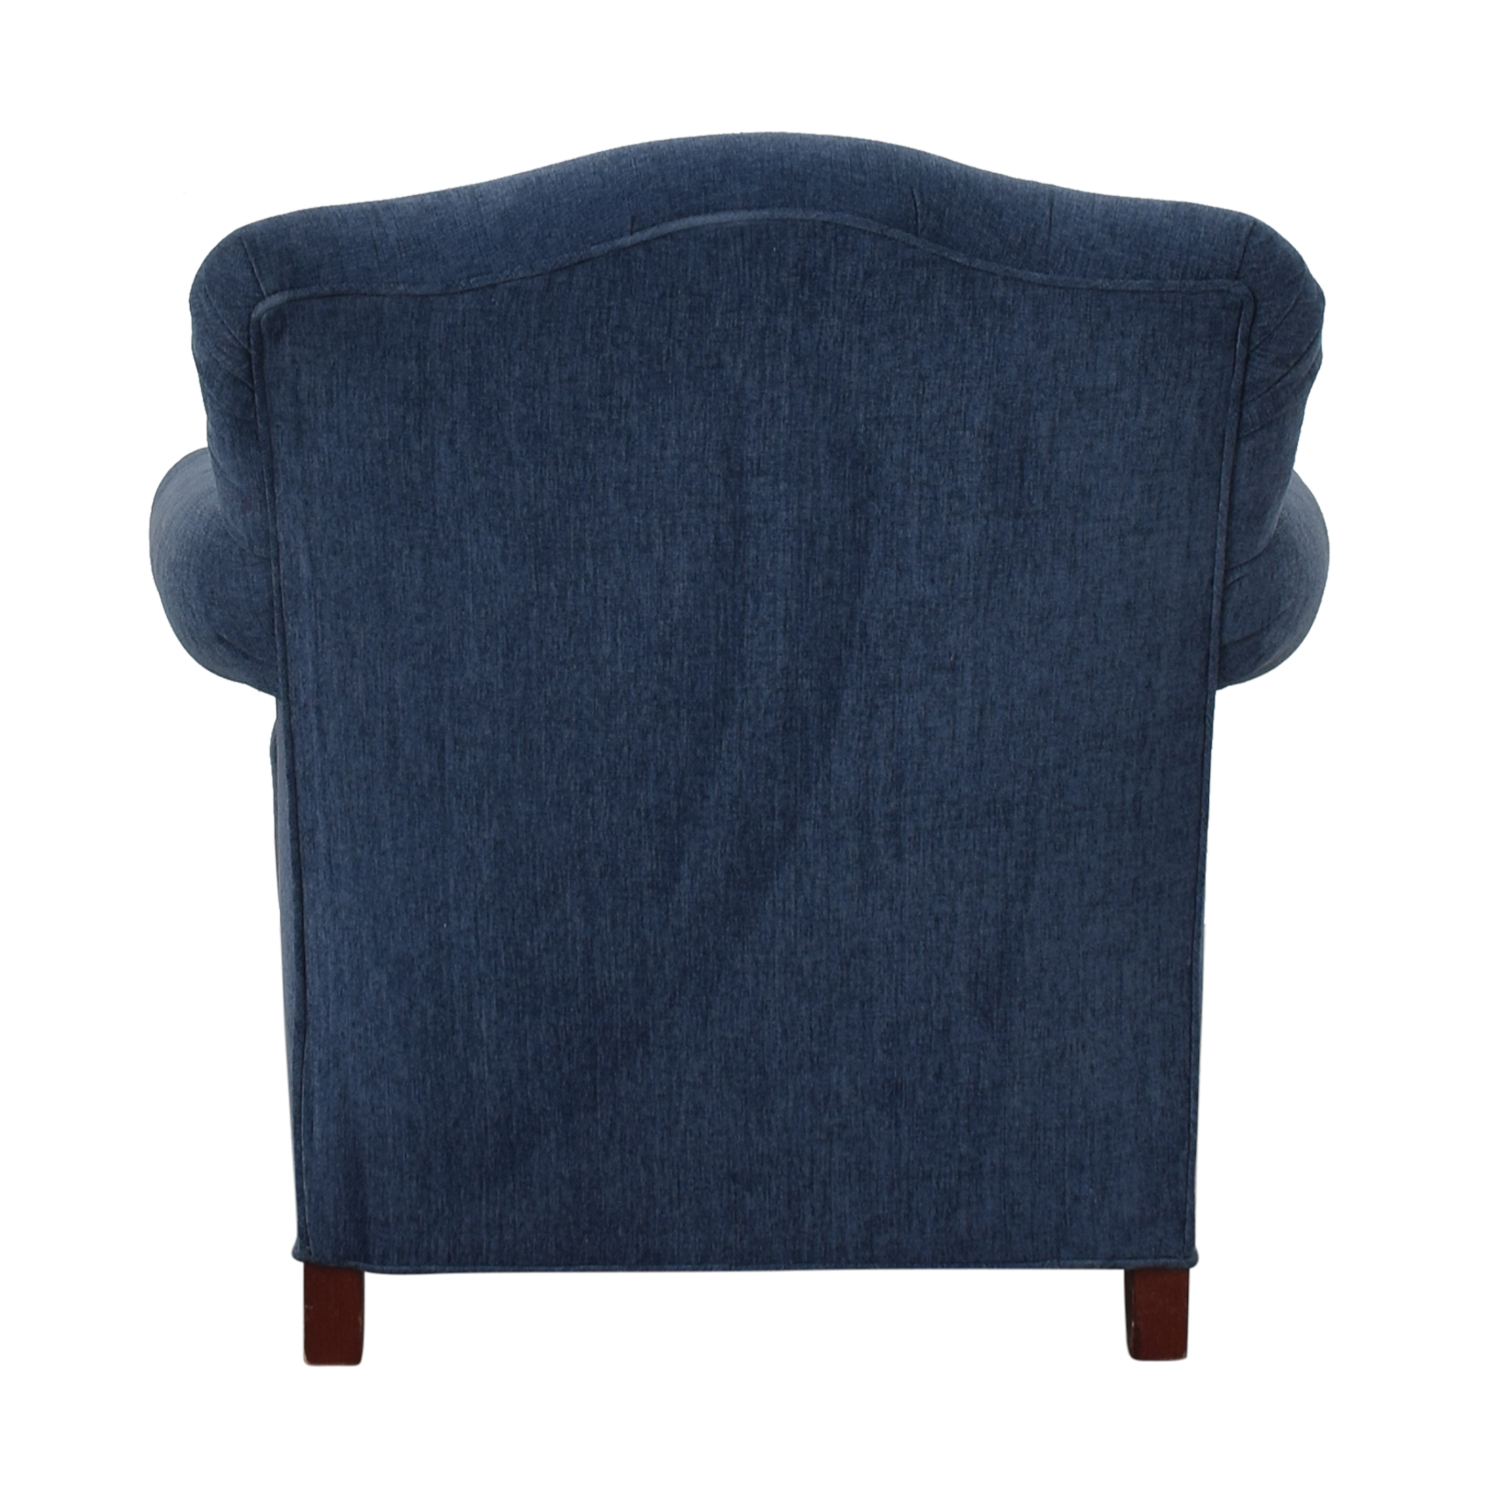 Incredible 87 Off Blue Upholstered Arm Chair Chairs Caraccident5 Cool Chair Designs And Ideas Caraccident5Info